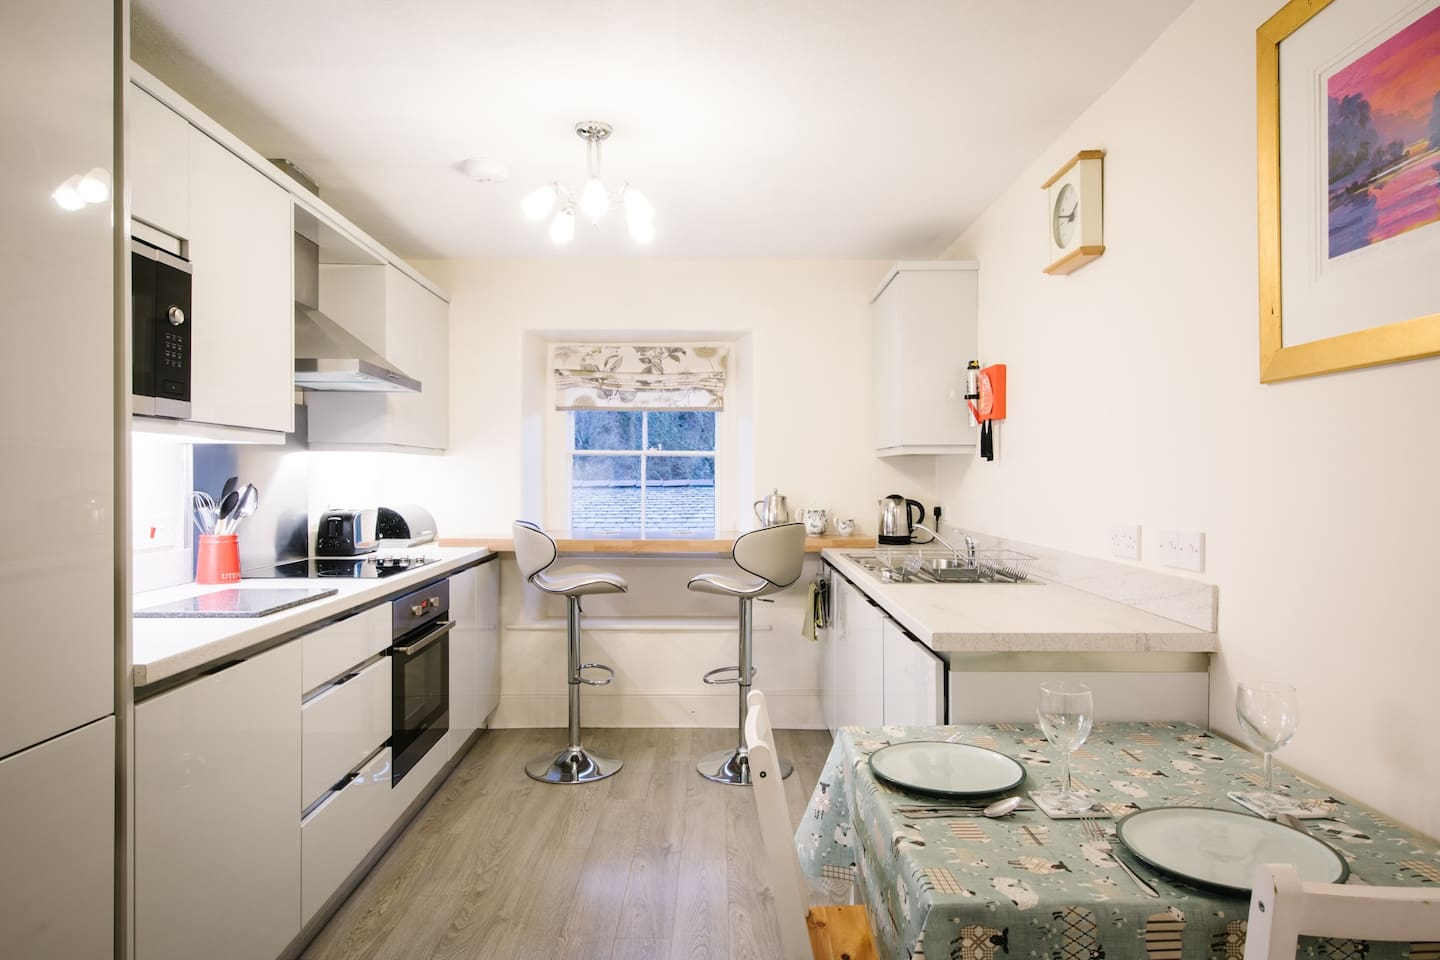 Kitchen with built in cooker, hob, microwave, fridge, freezer, washer/ dryer and dishwasher